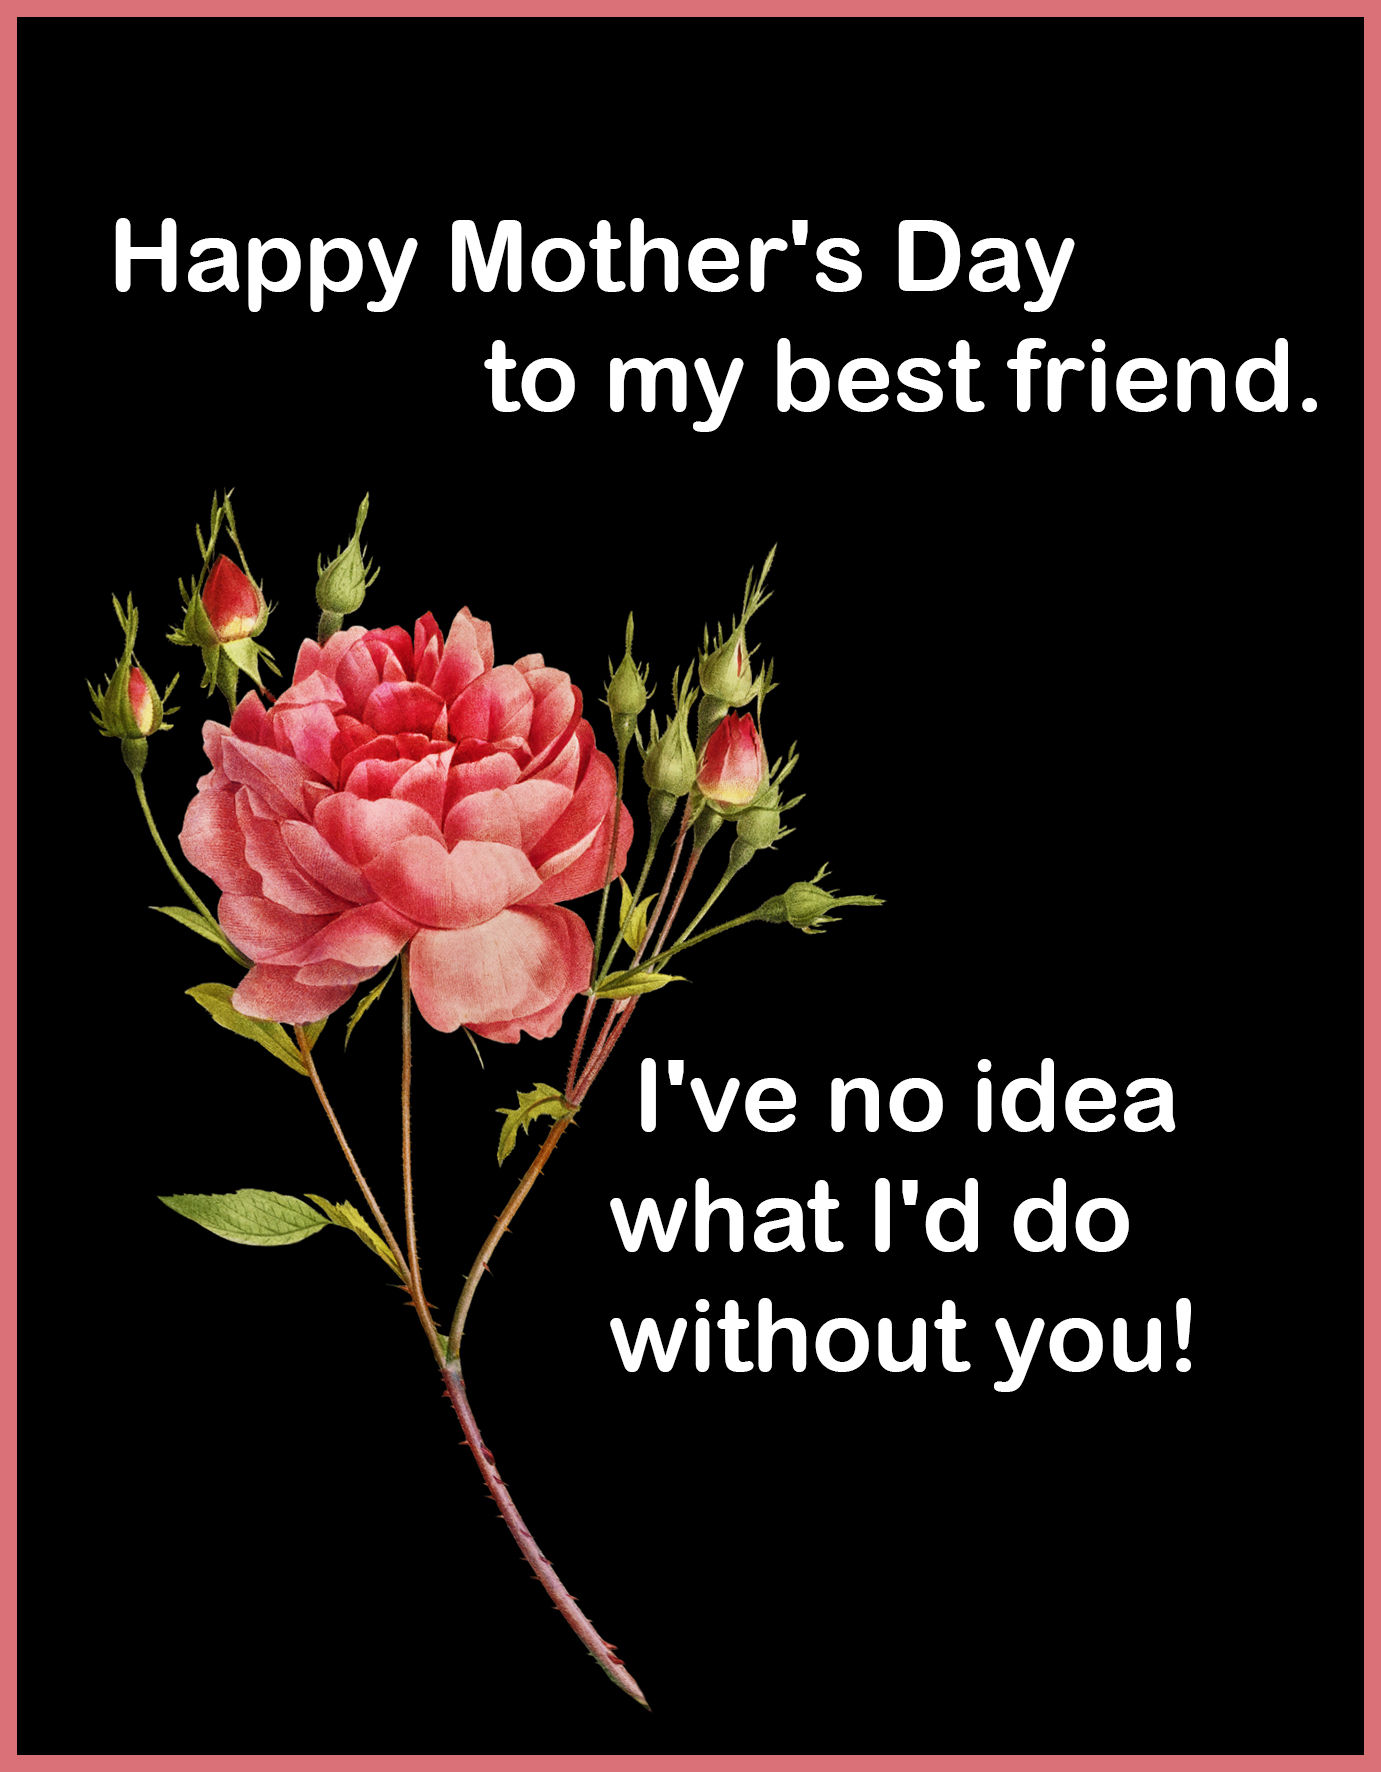 friend Mother's day greeting black with red rose